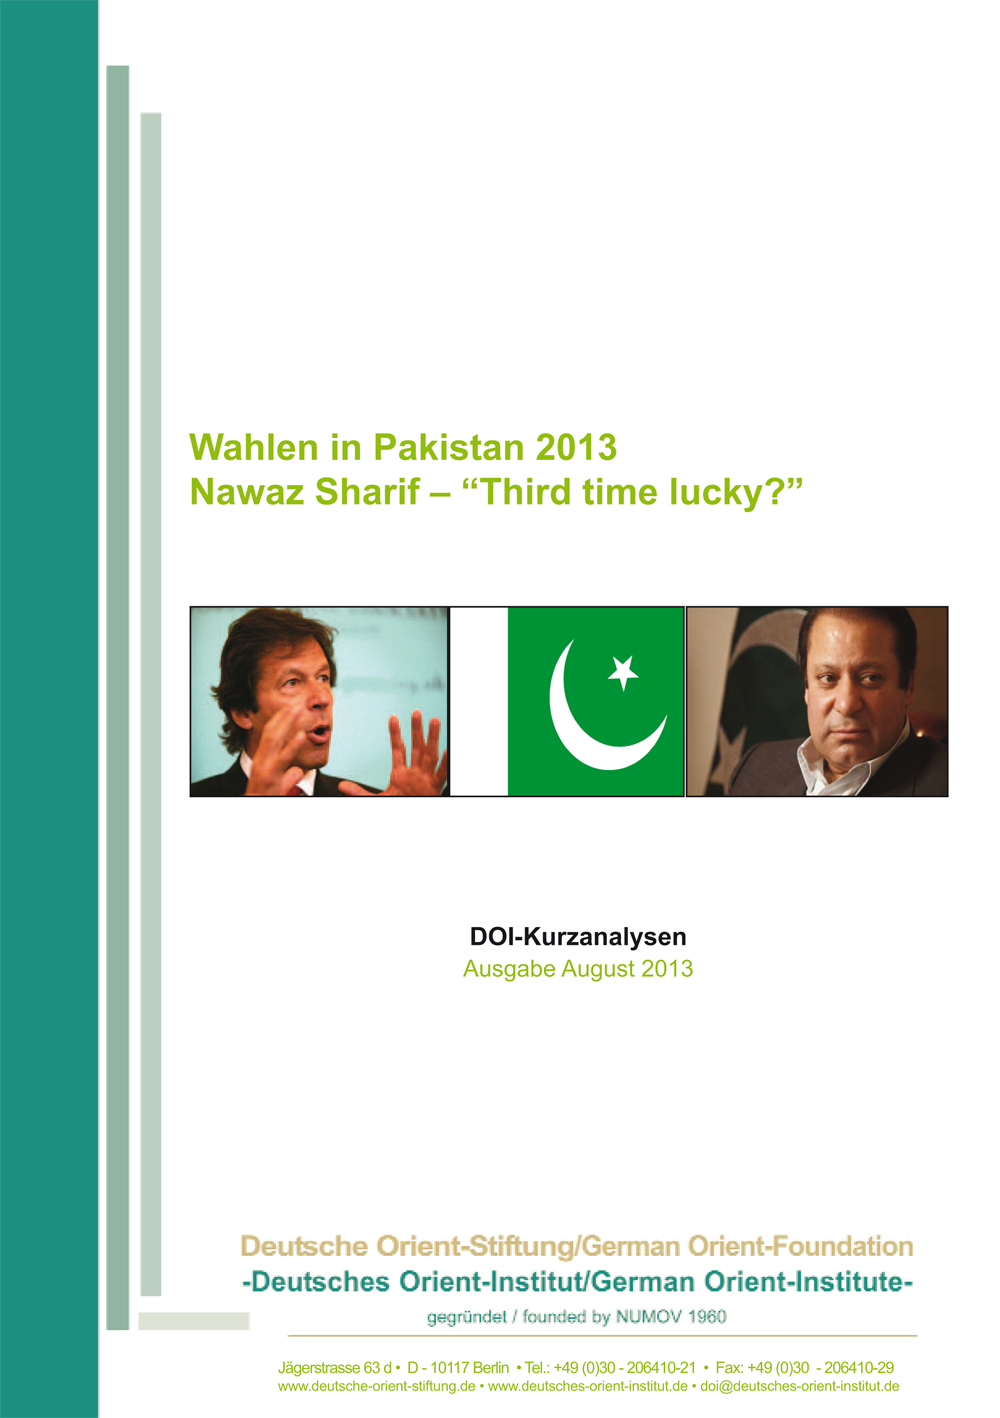 """Featured image for """"Wahlen in Pakistan 2013: Nawaz Sharif – """"Third time lucky?"""""""""""